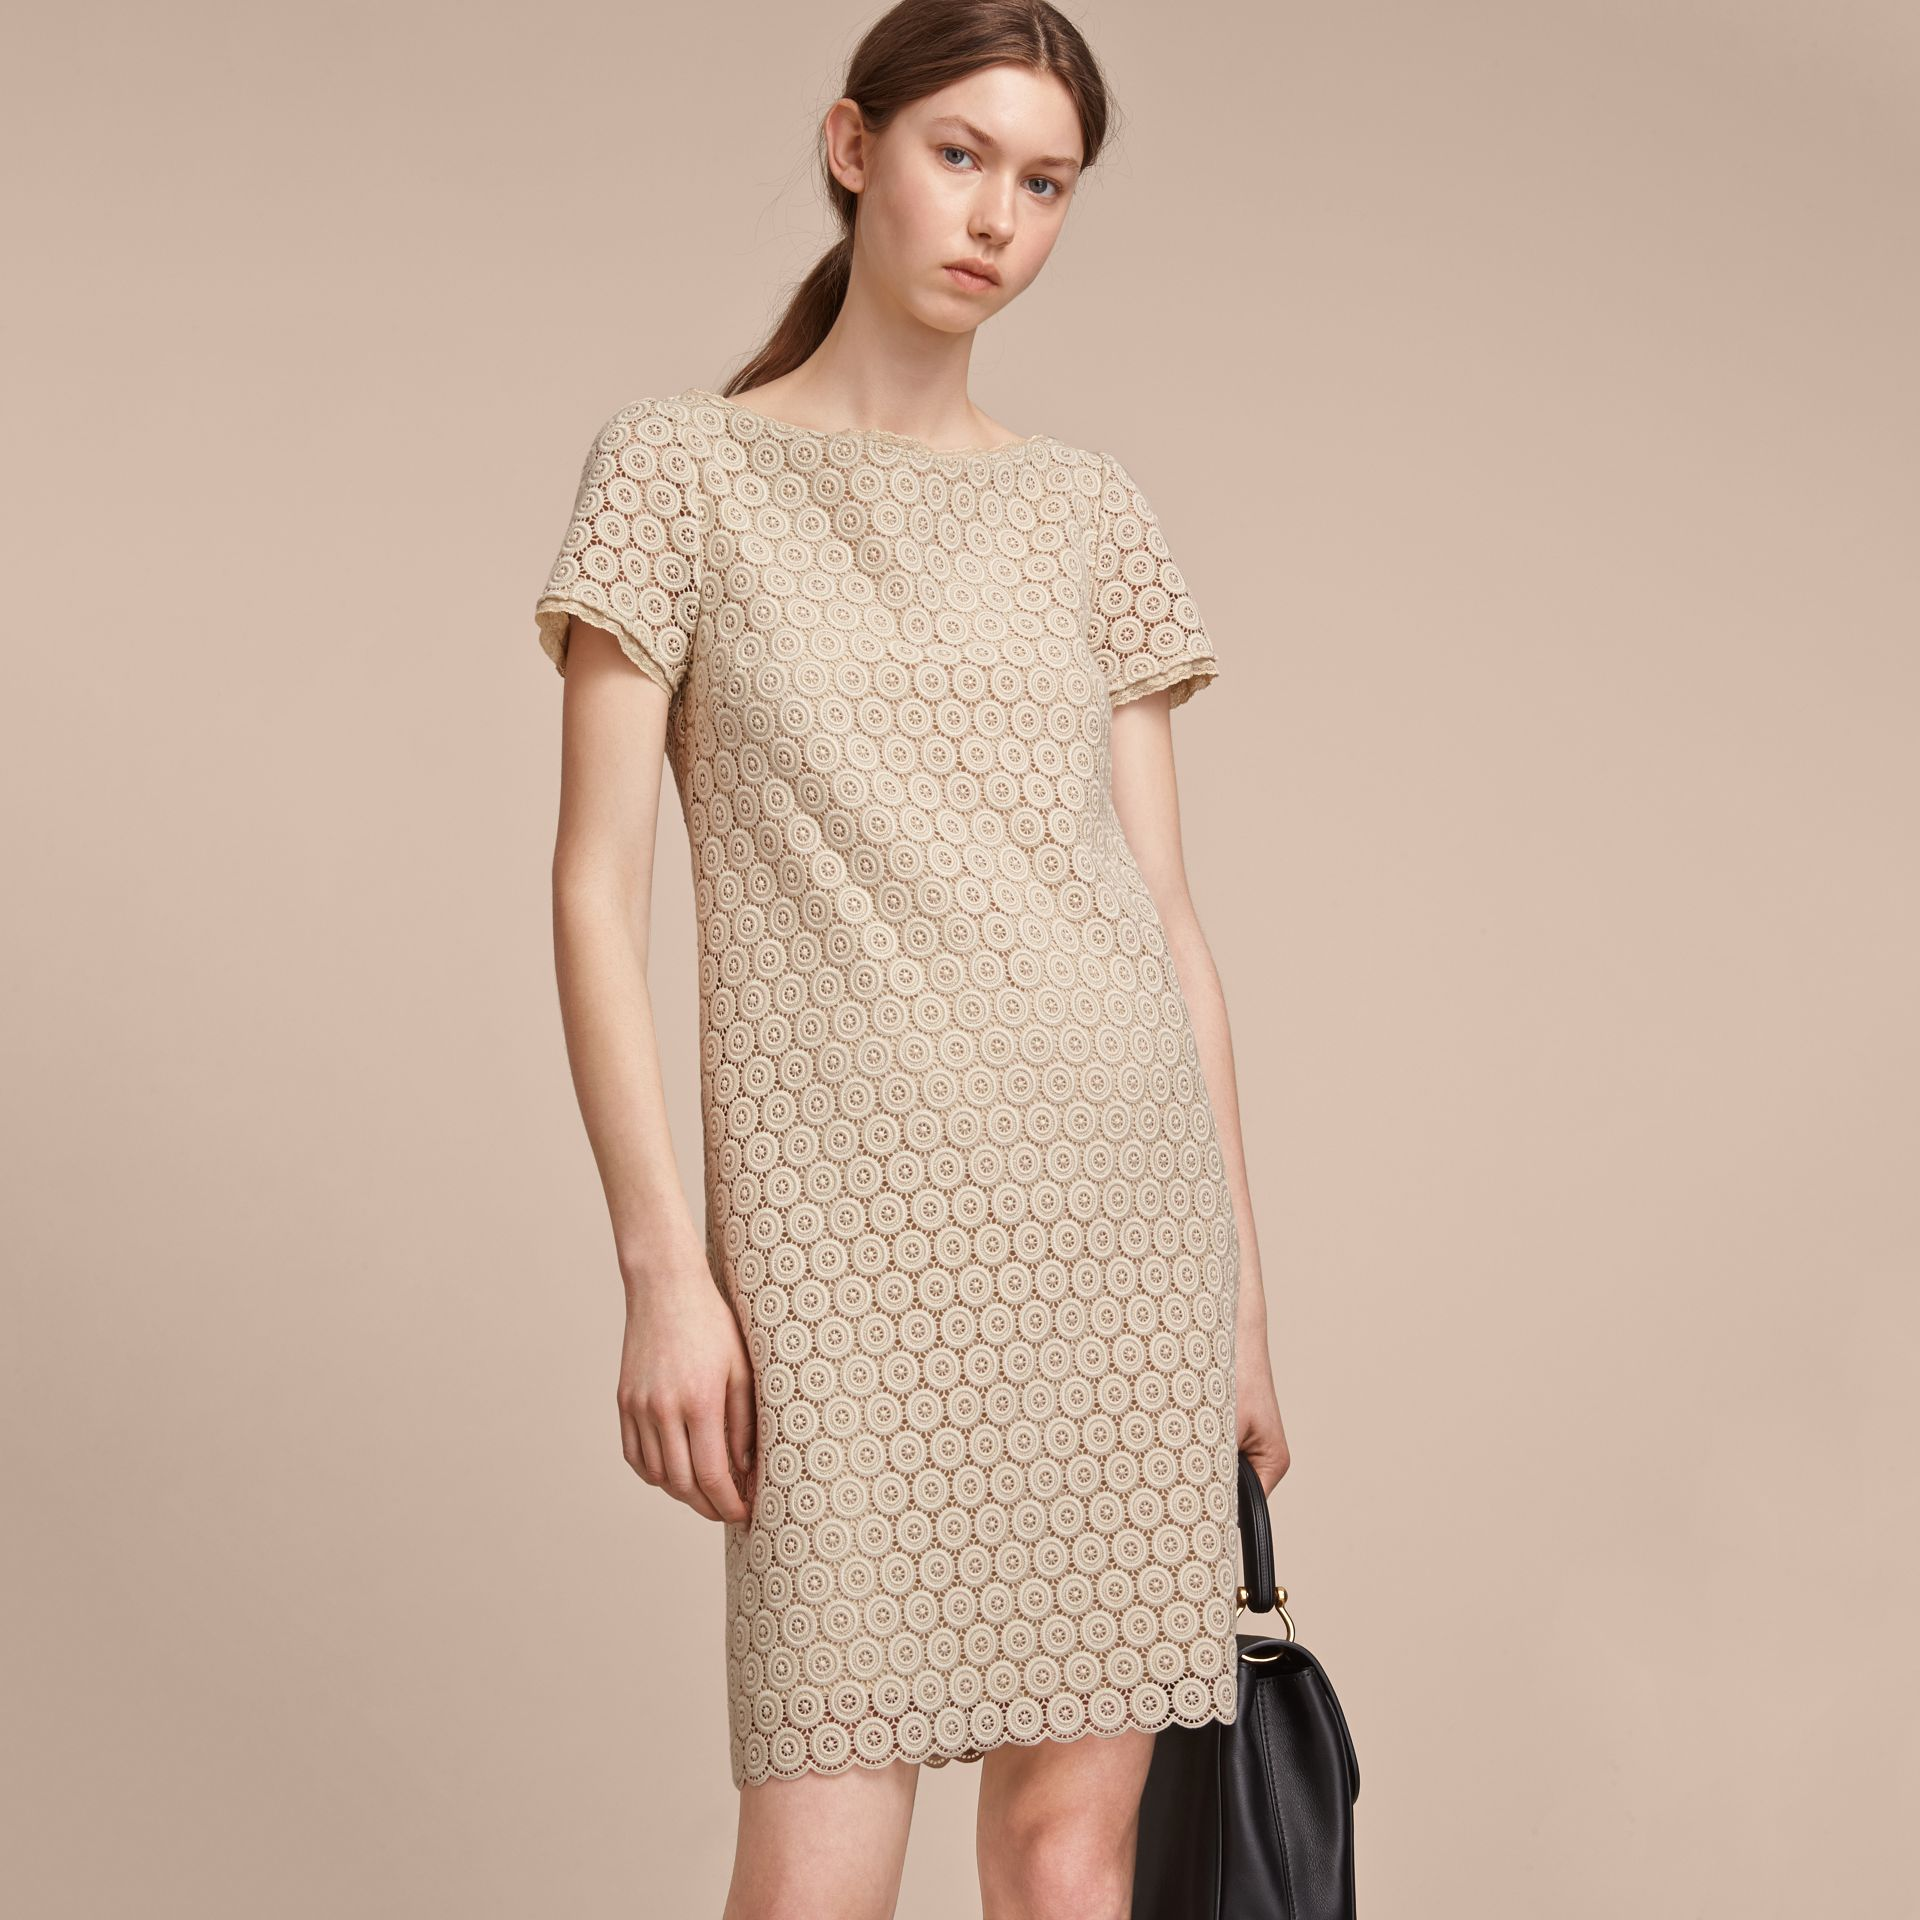 Short-sleeve Geometric Lace Dress in Stone - Women | Burberry Canada - gallery image 6